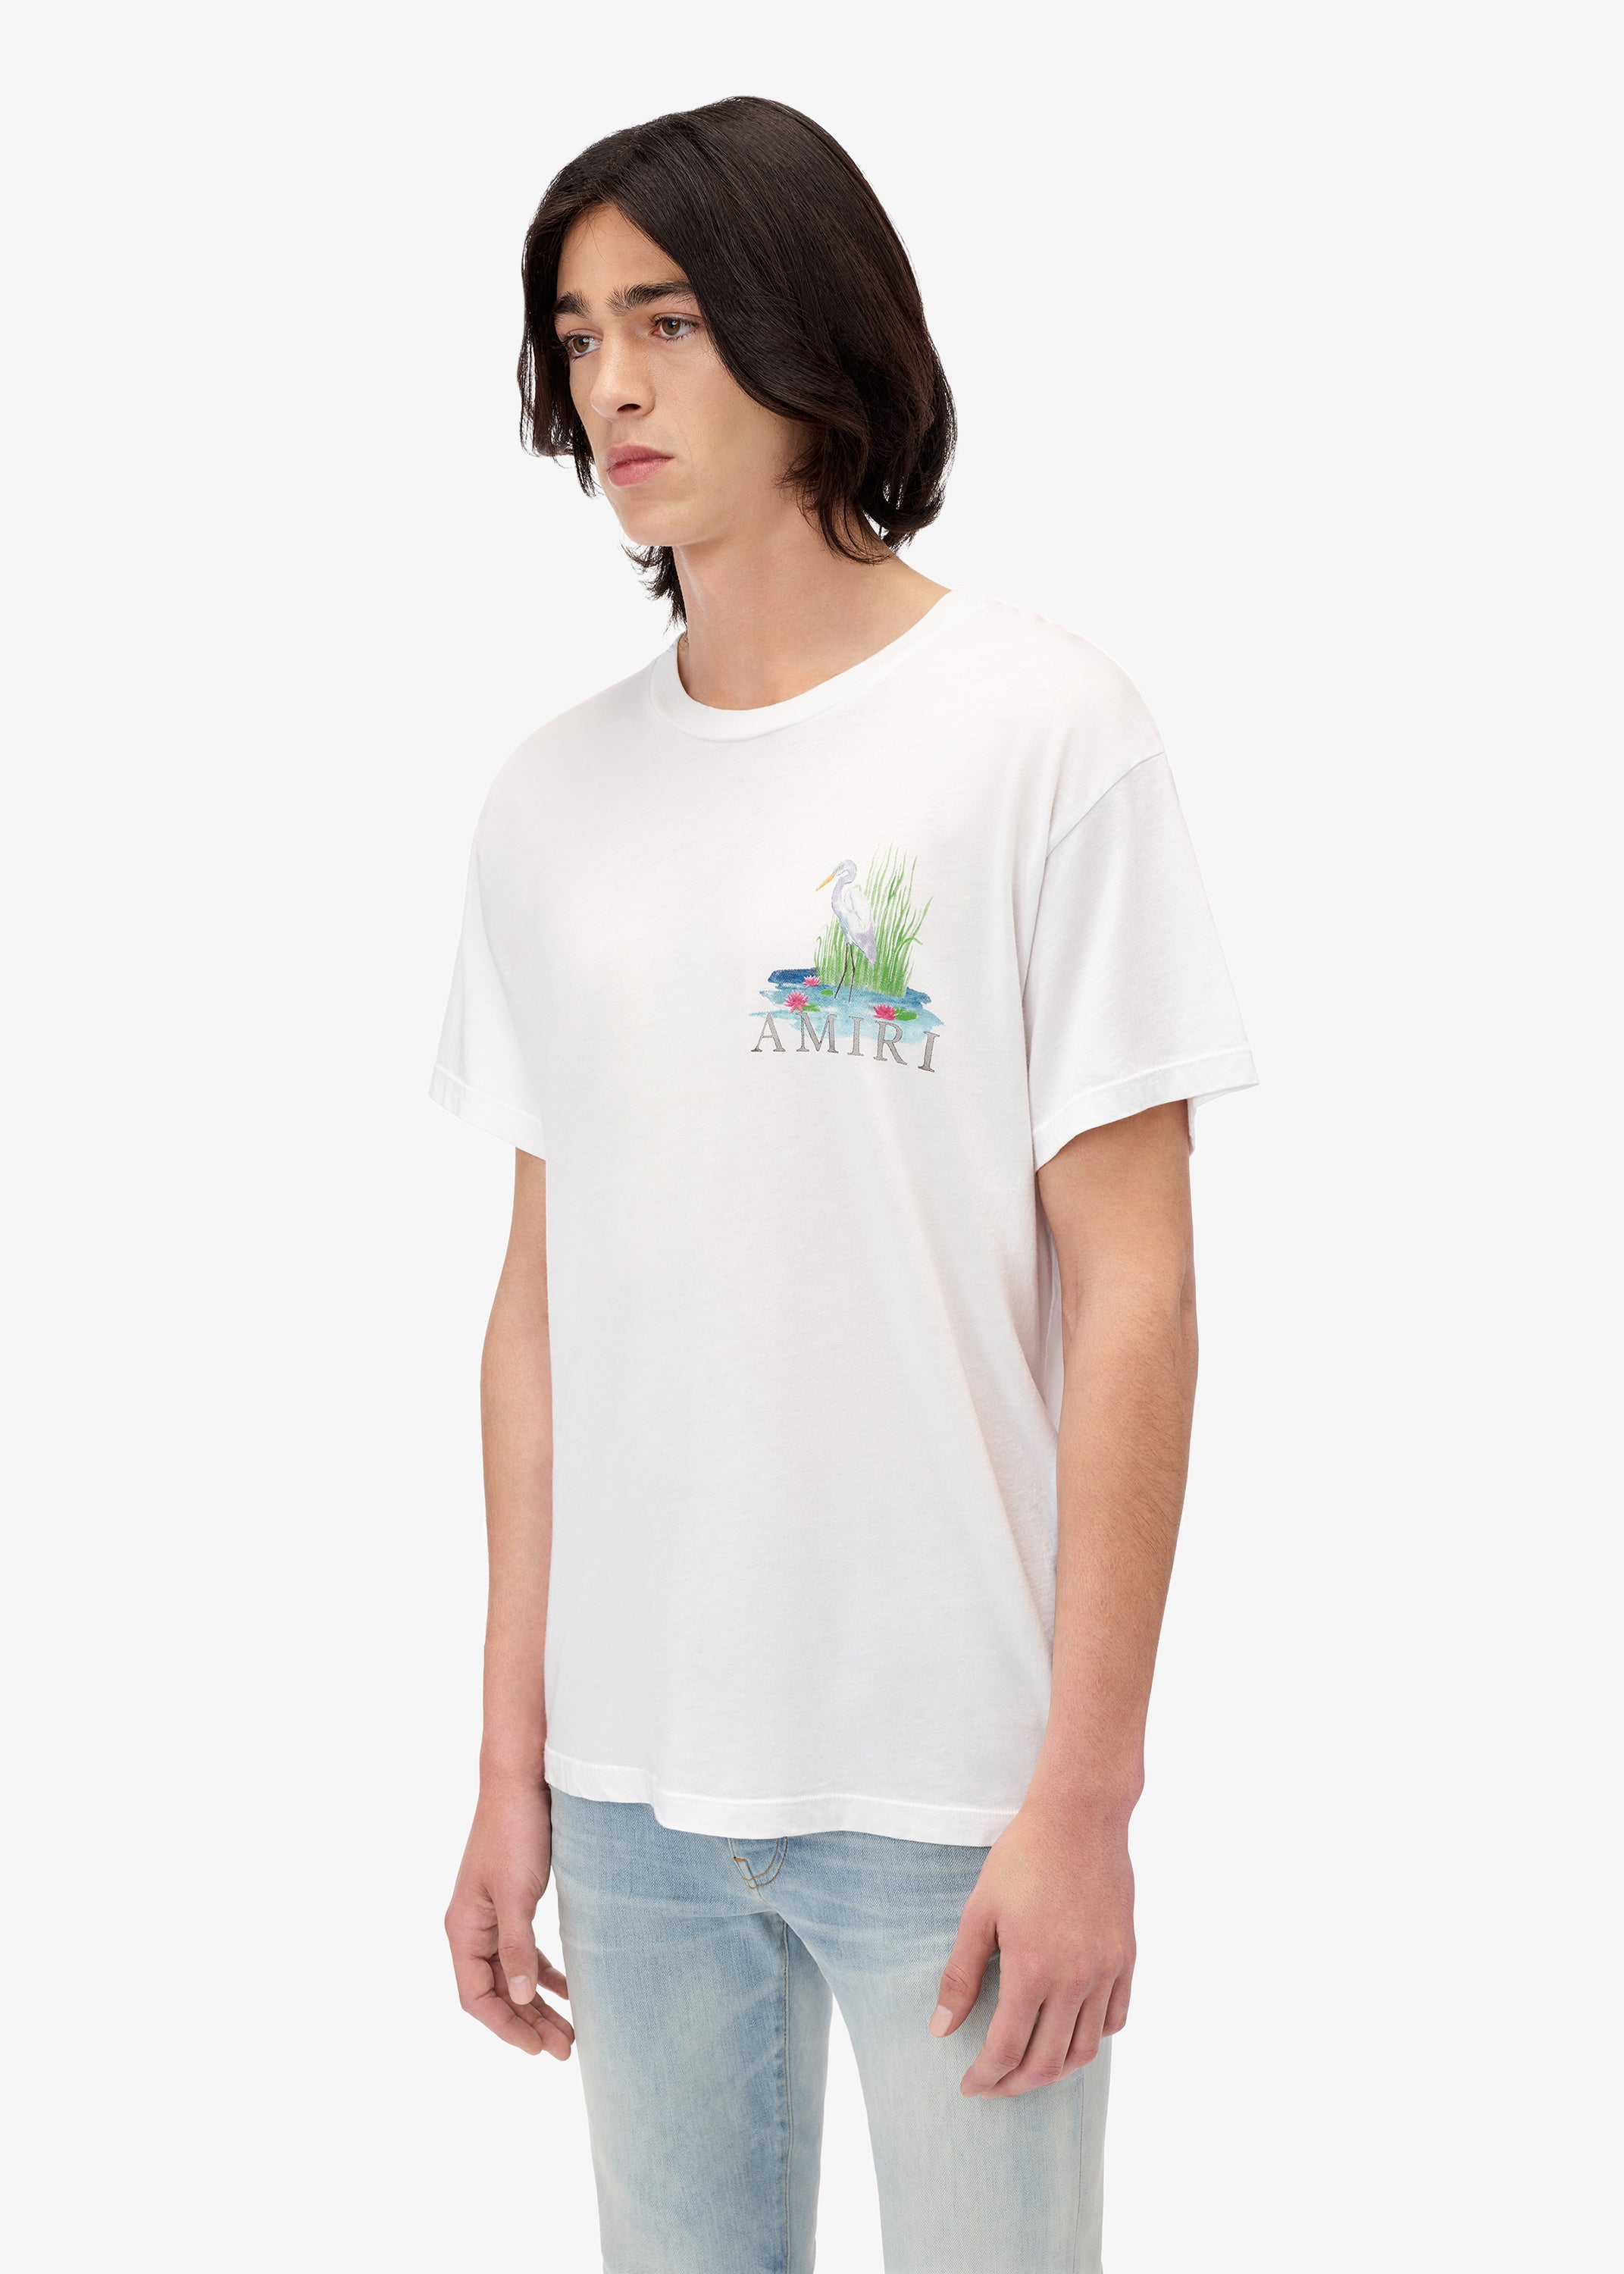 standing-egret-tee-web-exclusive-white-image-2